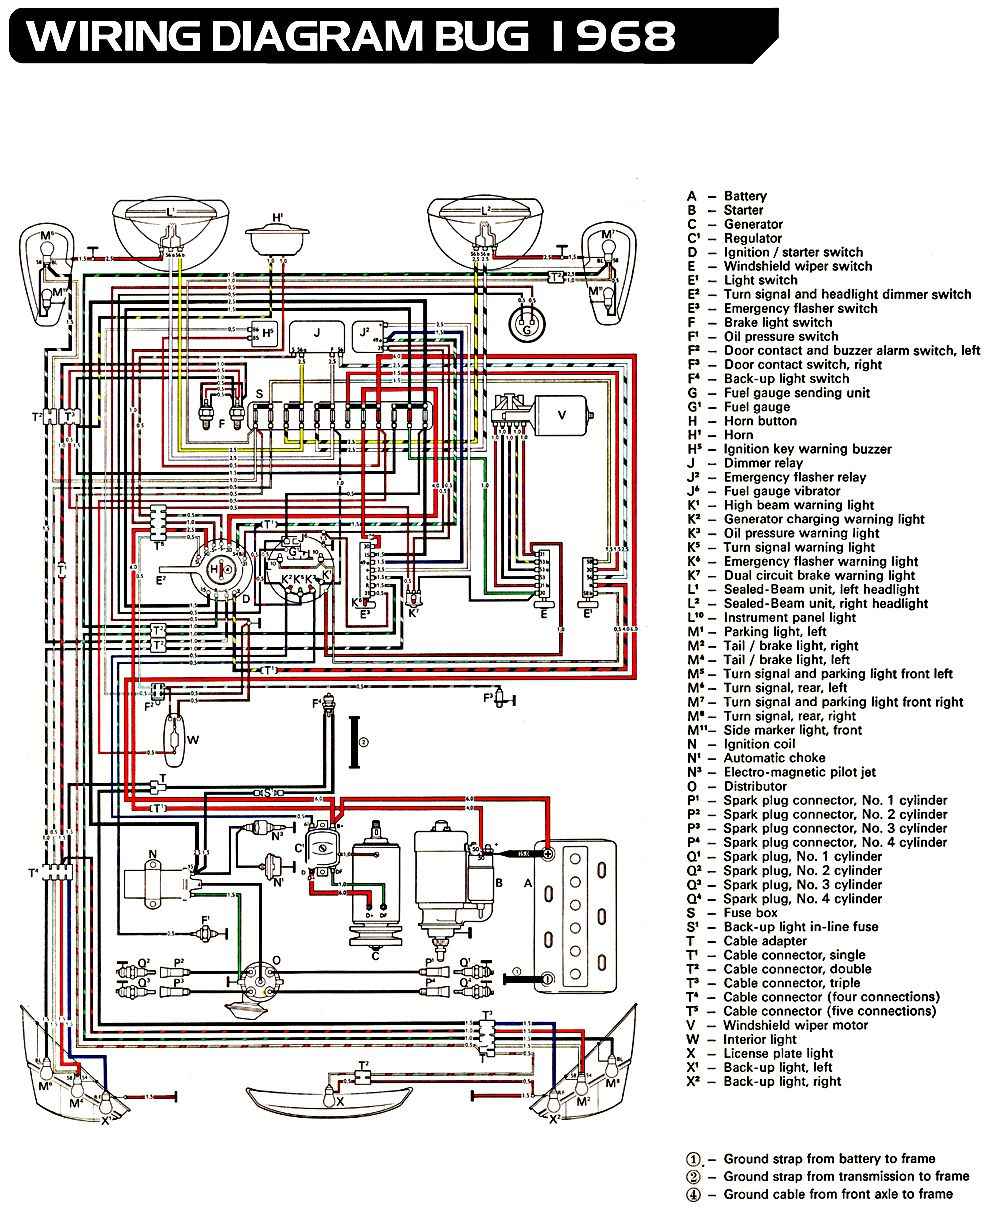 medium resolution of vw bug ignition wiring diagram 73 vw wiring diagram free vw 73 vw beetle coil wiring 73 vw bug ignition wiring